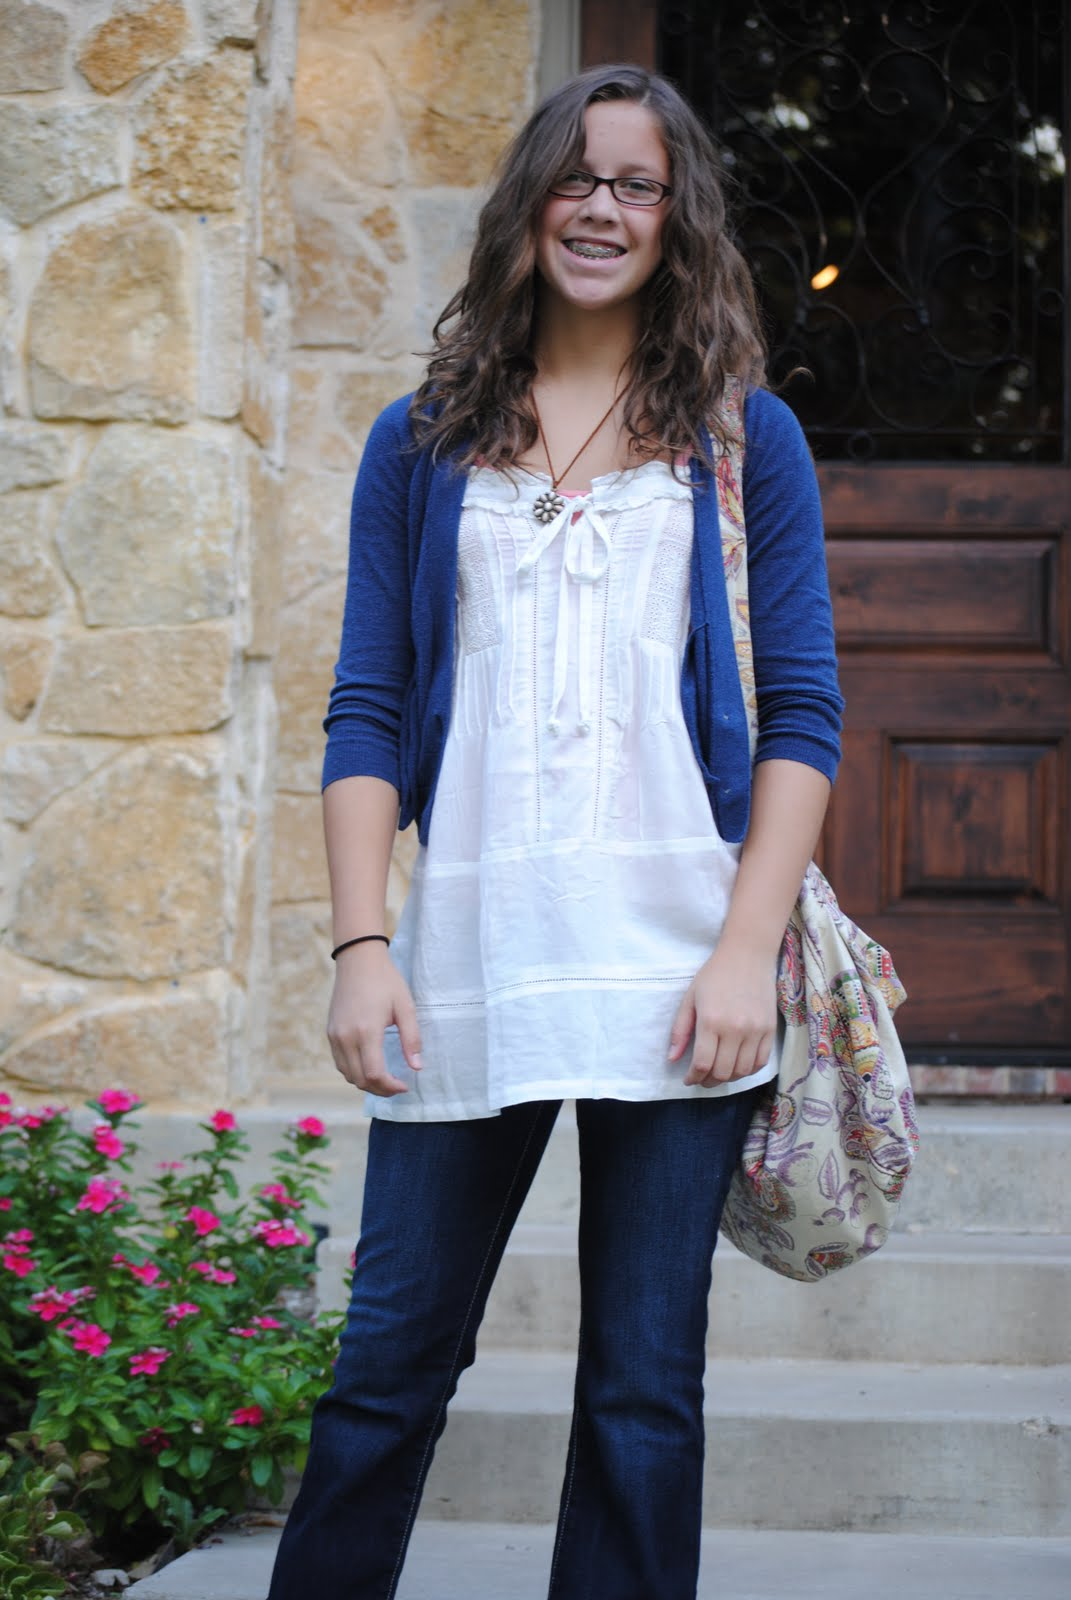 Emily- first day of 8th grade...cutie patootie!